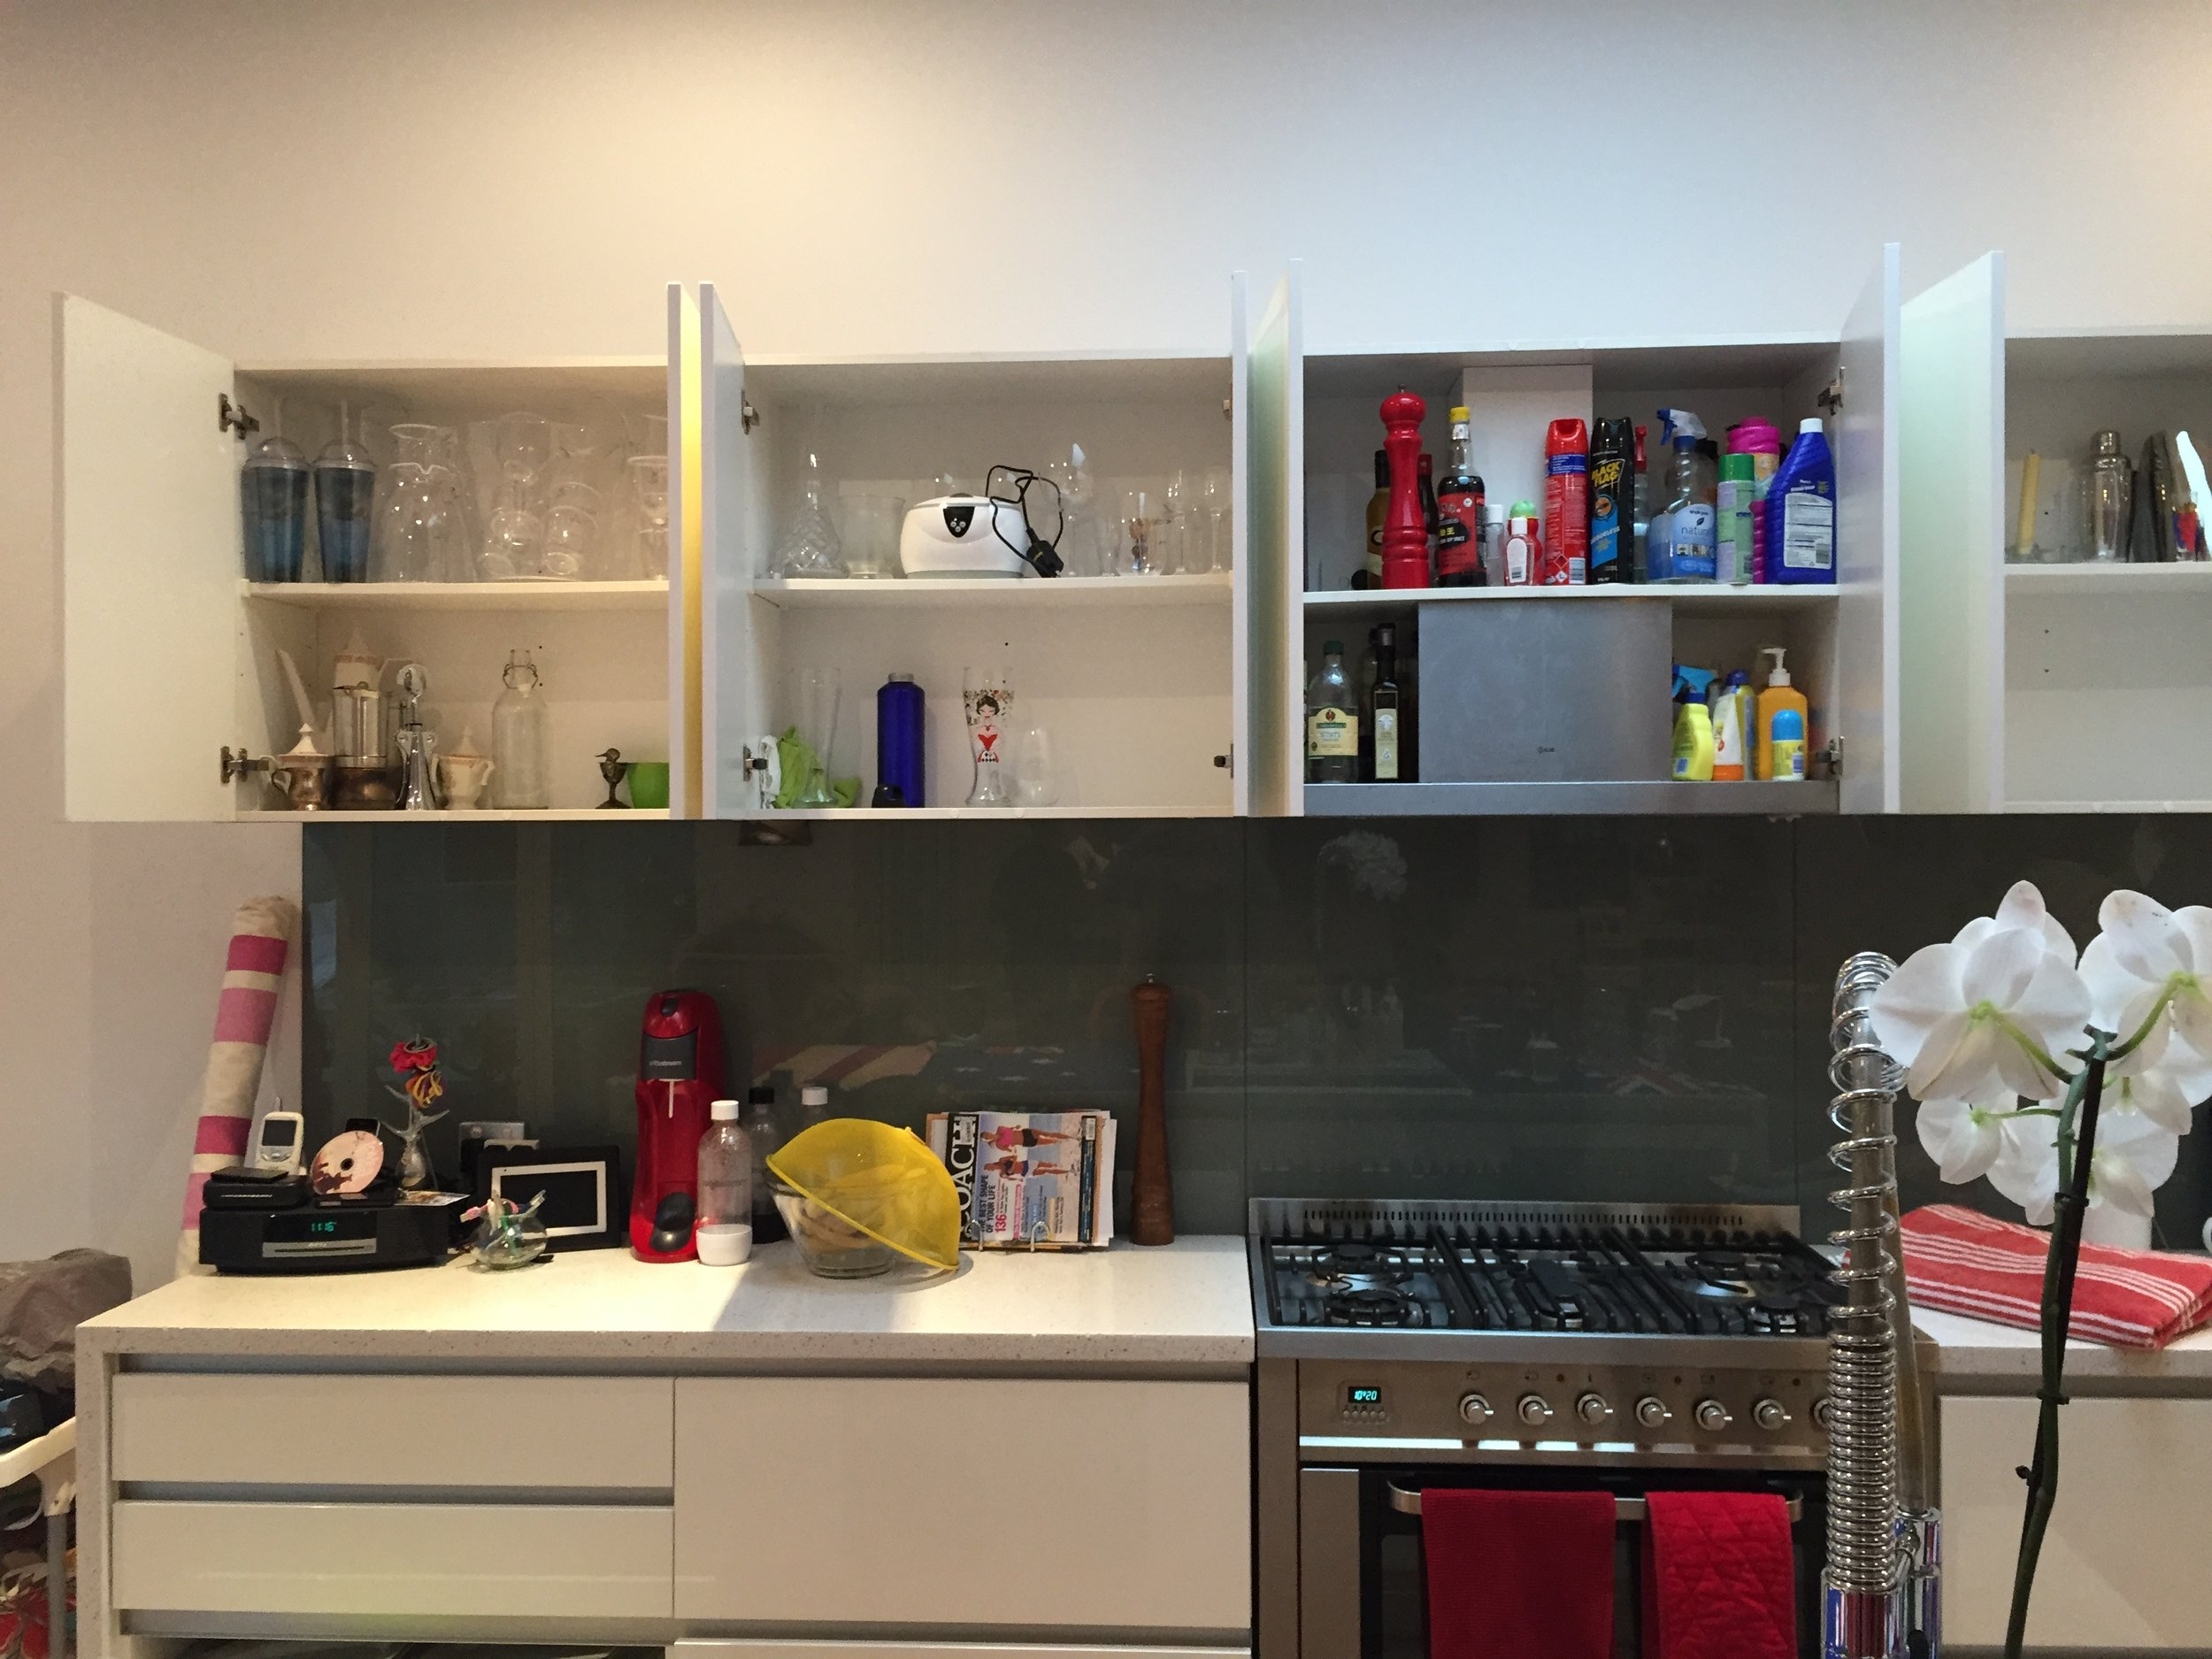 These cupboards are vital and easy to access, but they are full of things that the client rarely/if ever used. While, the coffee mugs and cups were all in one tiny end cupboard.